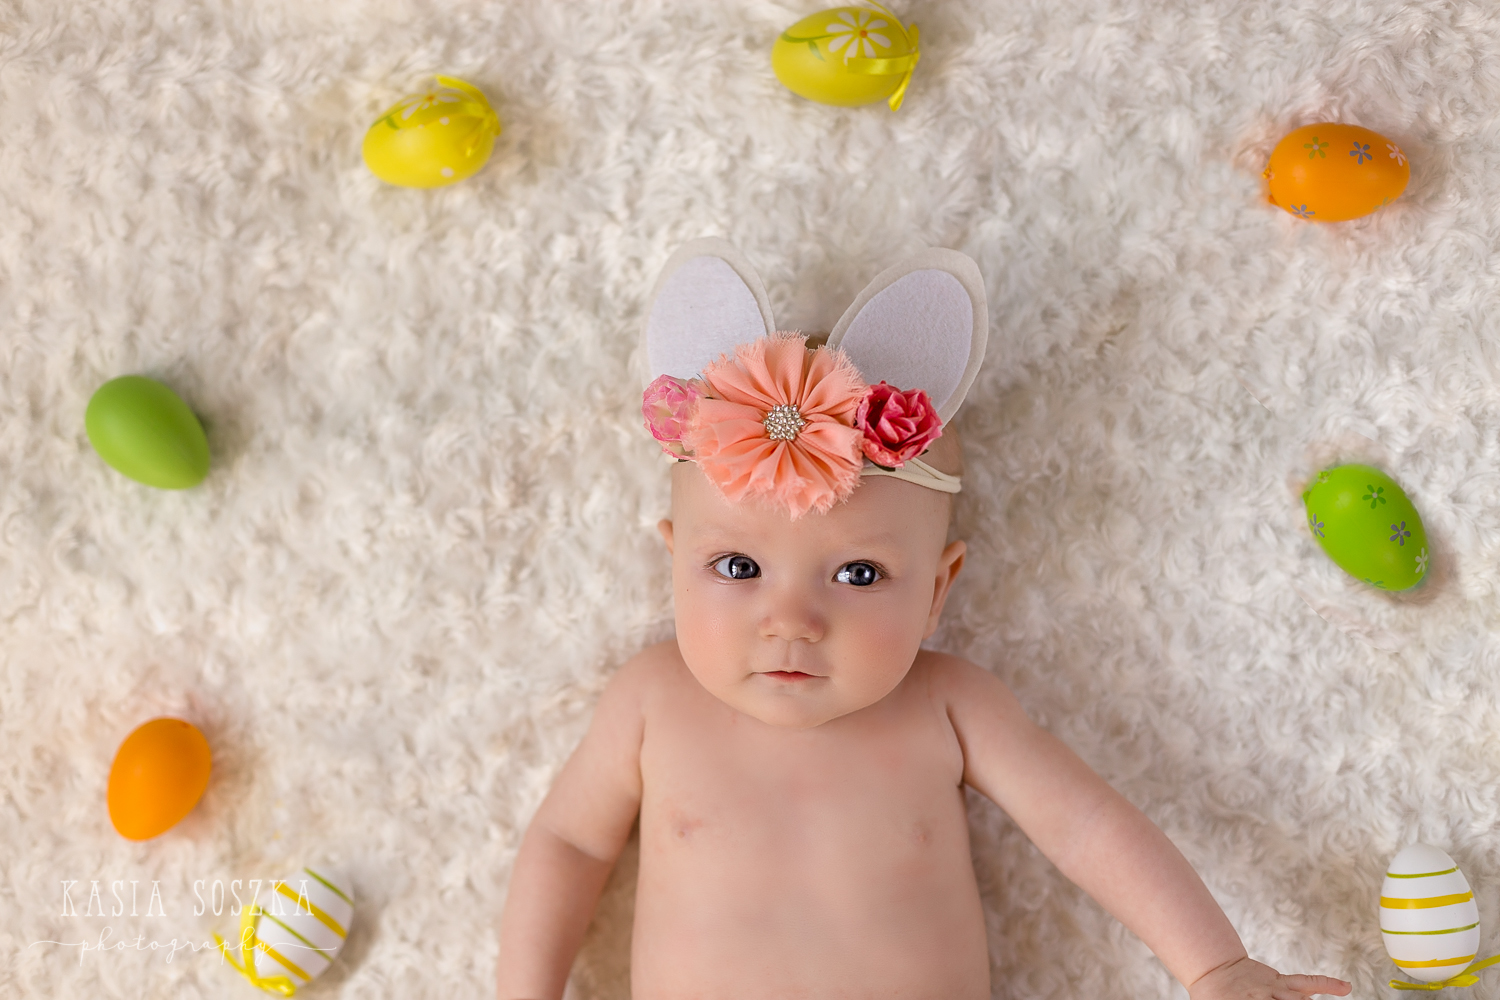 Leeds baby photographer: cute baby girl wearing Easter bunny headband lying on a white blanket in a circle made of colorful Easter Eggs